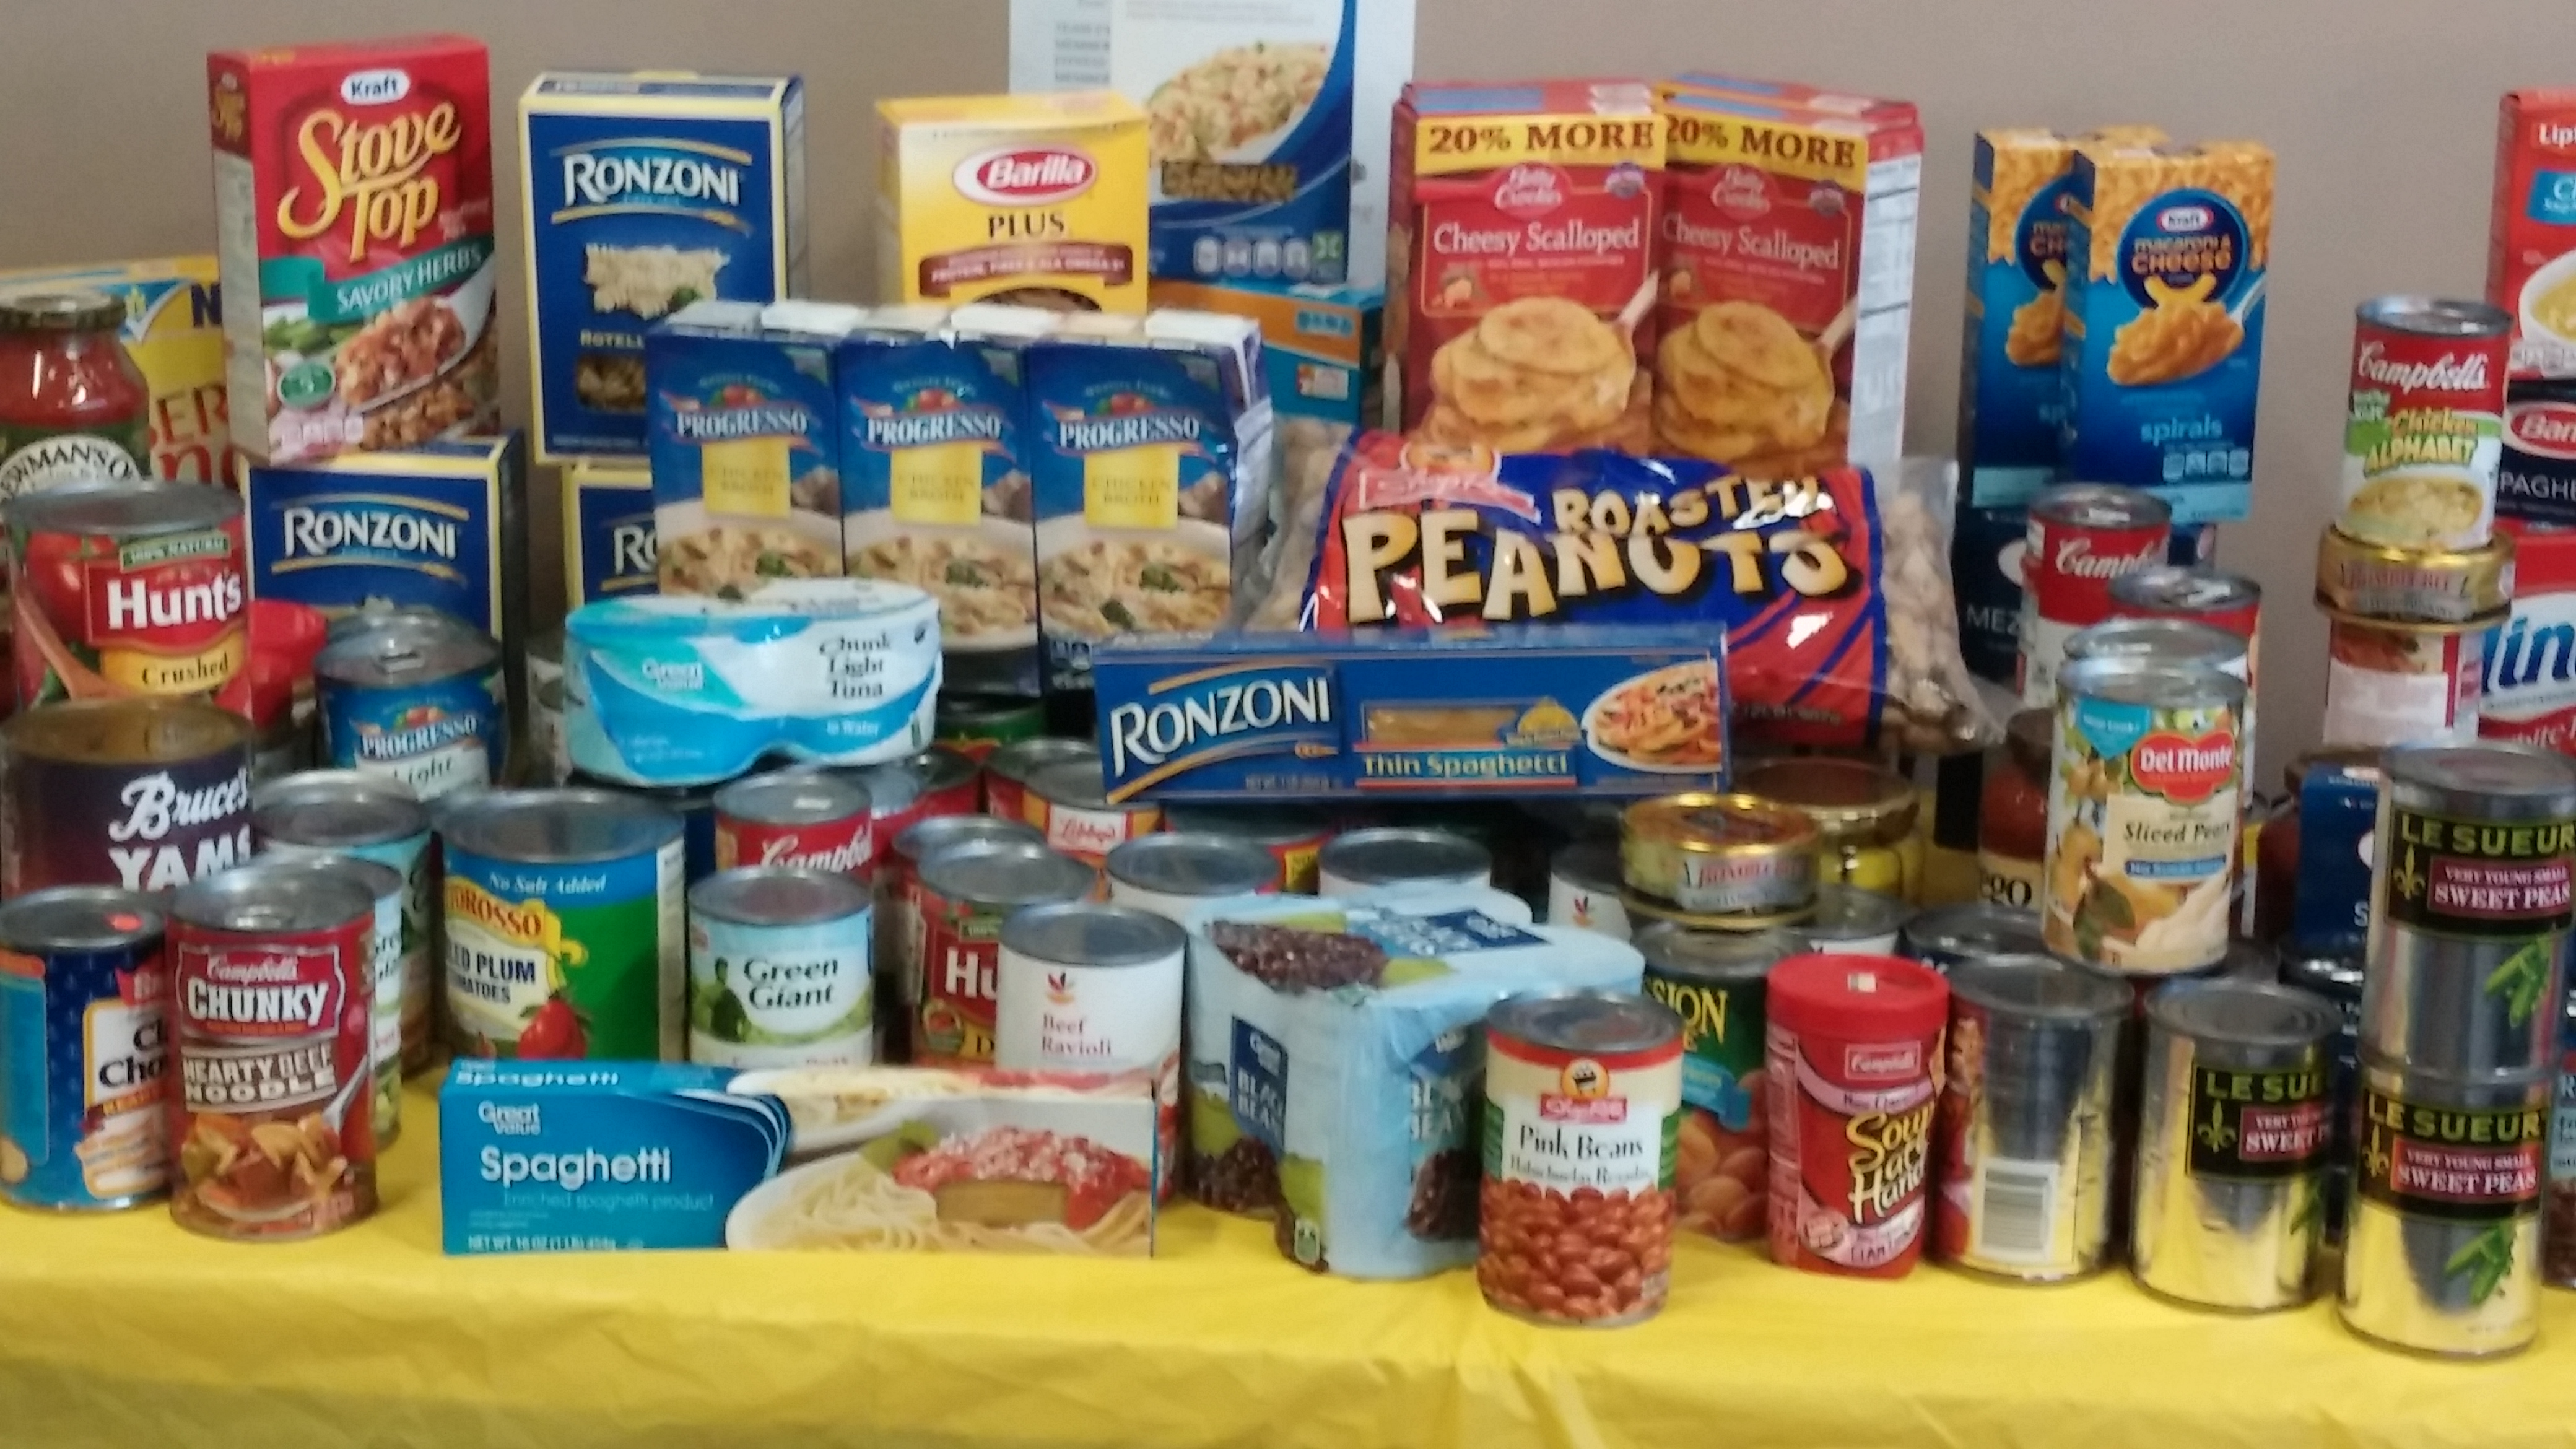 Bring in 5 Nonperishable Food Items, Join for $0 Down. Save $100!(1 year Membership)